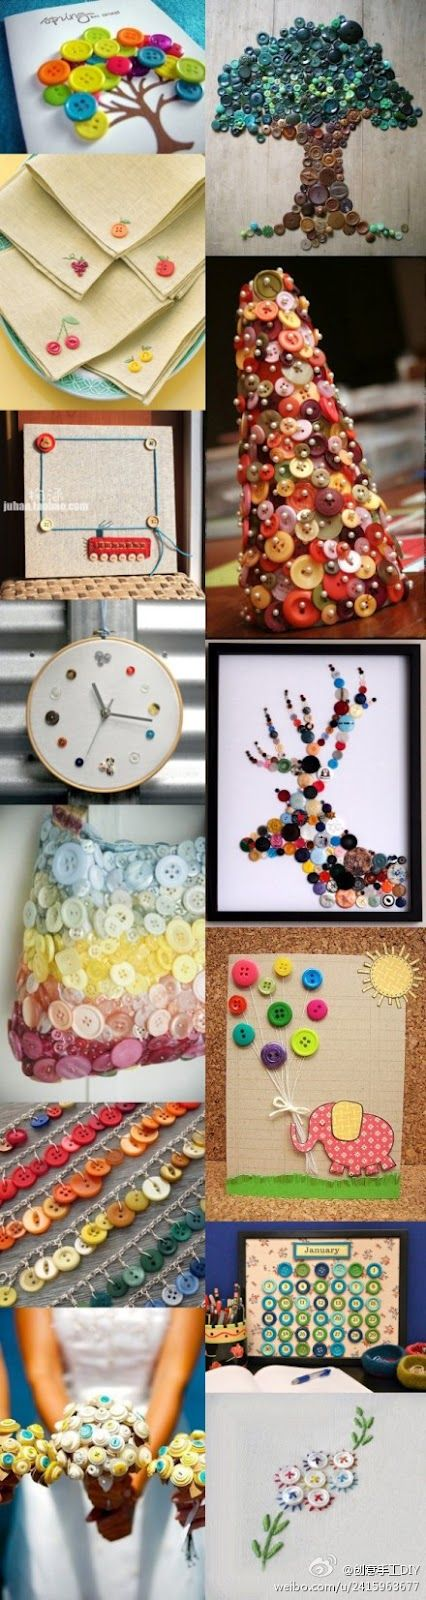 My nickname is Button.... New art hobby for me - using buttons!!! Something to ponder...